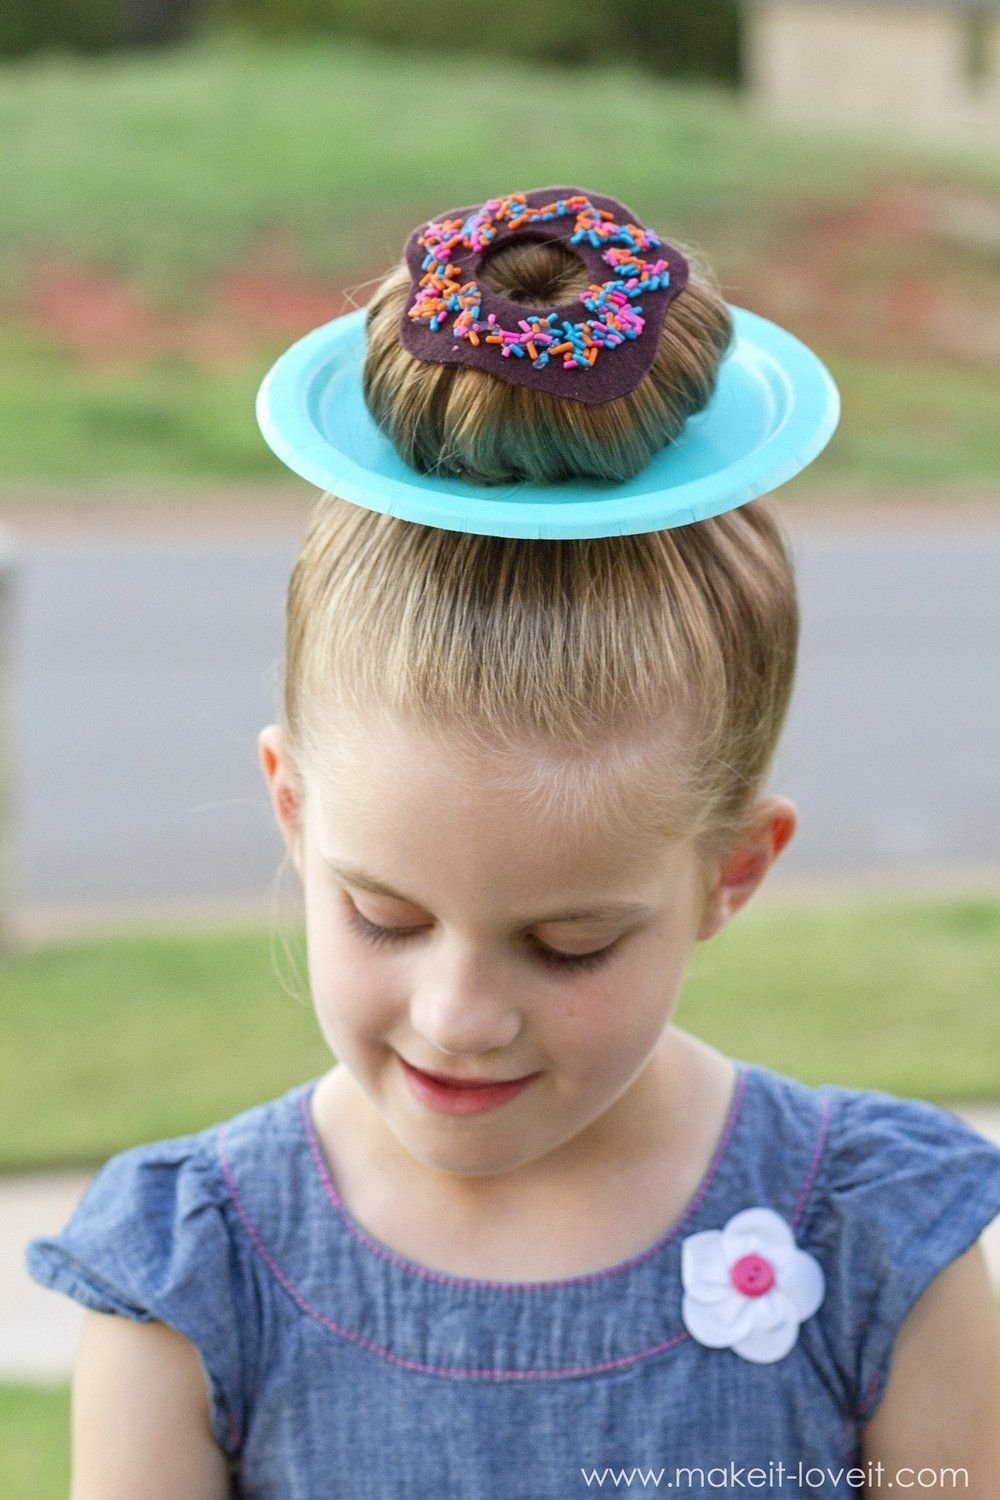 10 Wonderful Easy Crazy Hair Day Ideas For Girls 25 clever ideas for wacky hair day at school including 9 2021